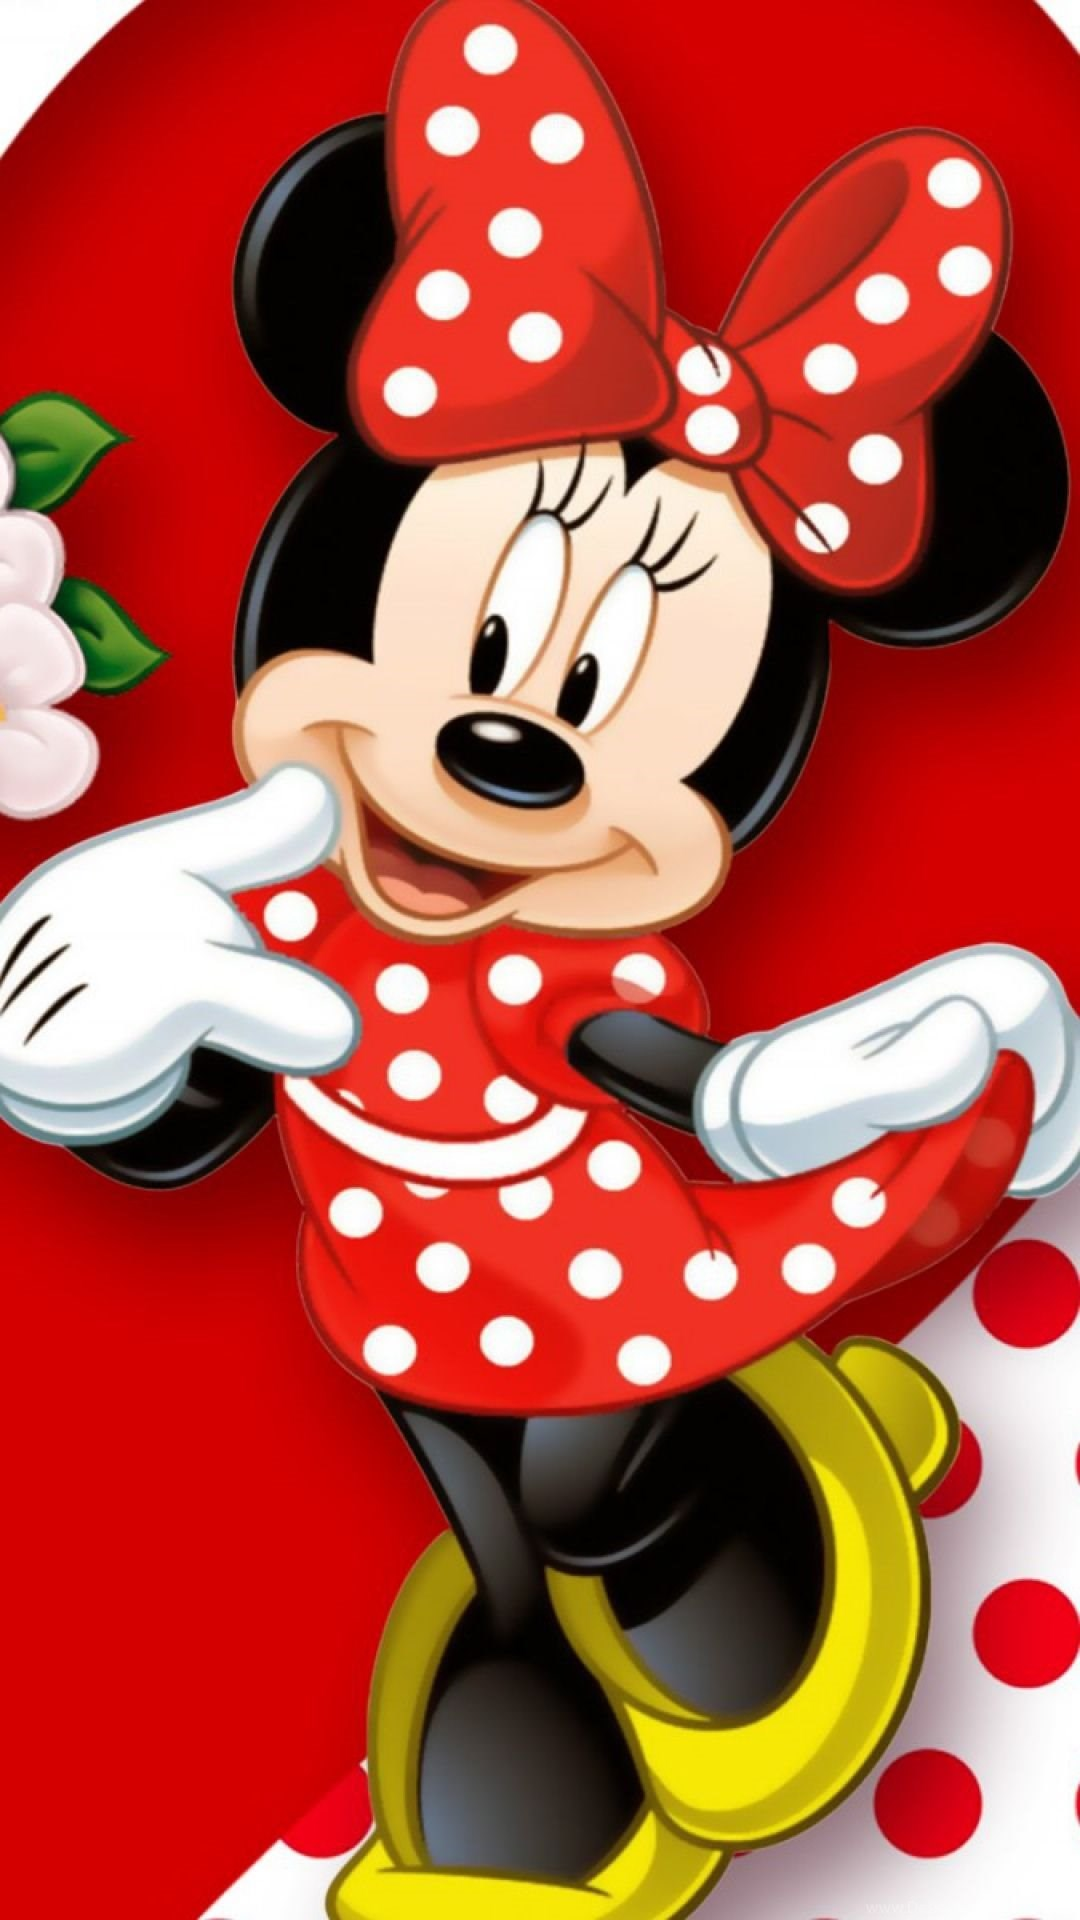 382782 download wallpapers 1080x1920 minnie mouse mickey mouse